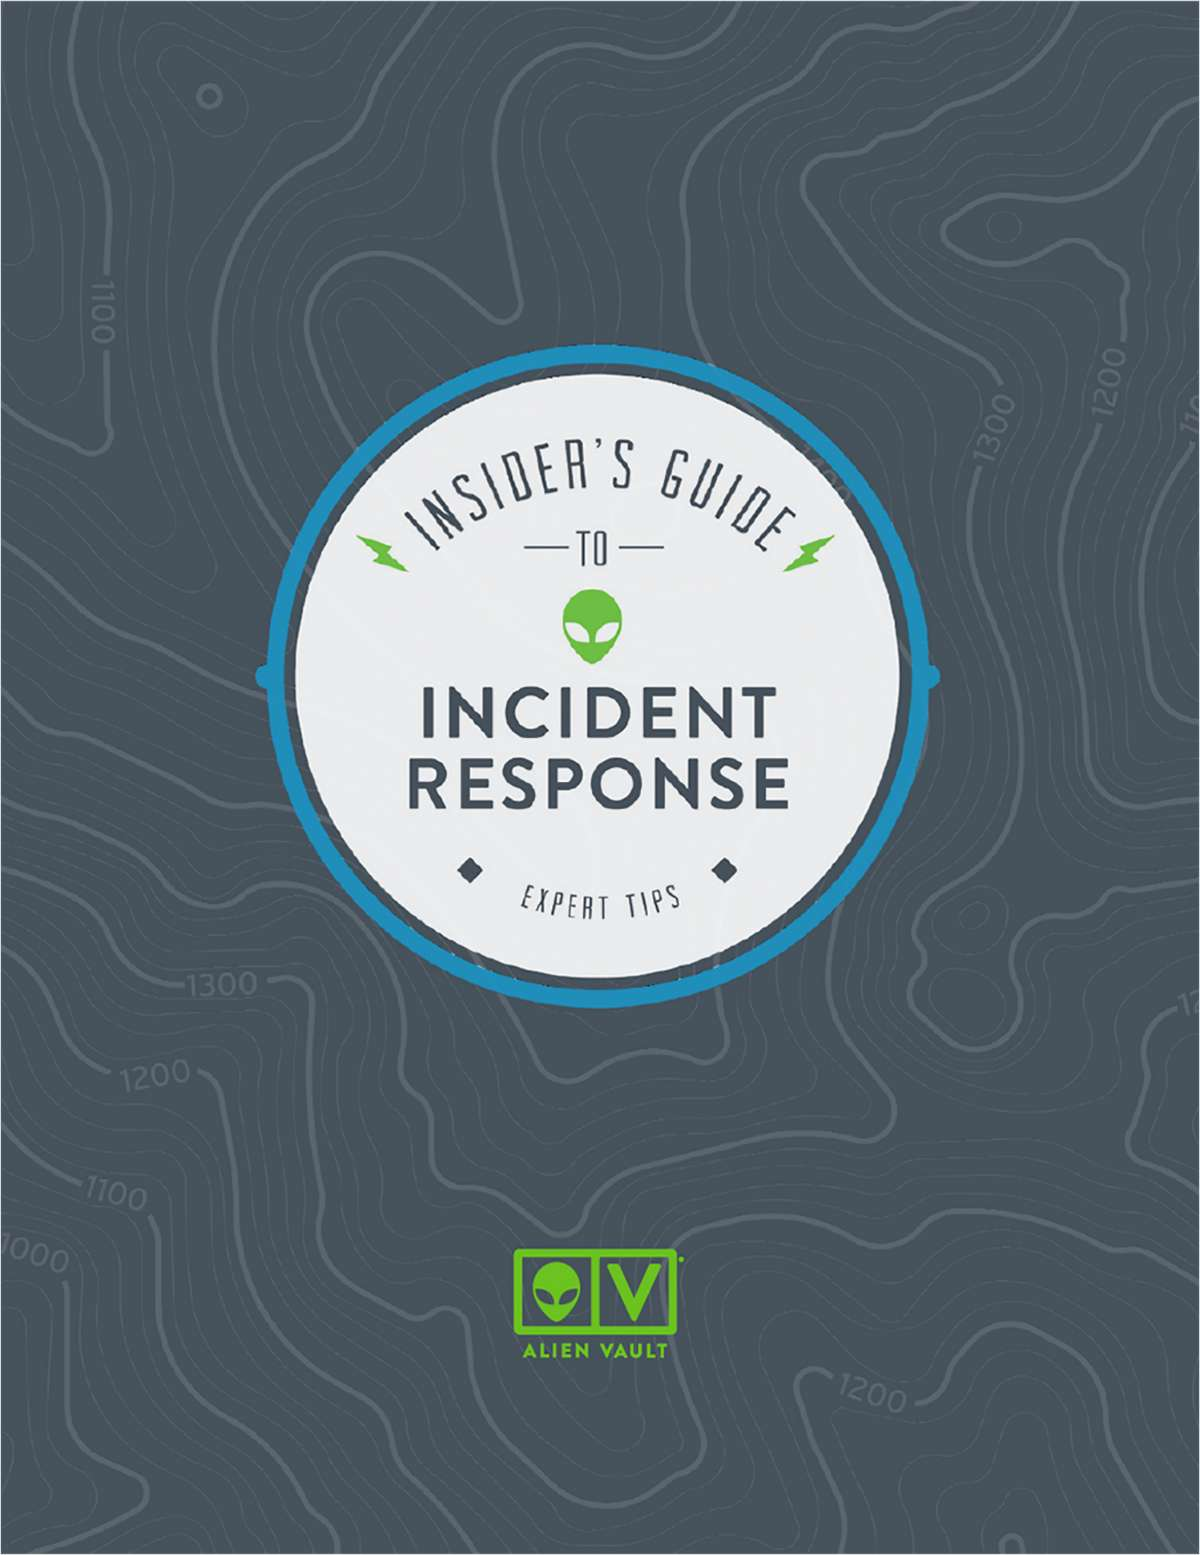 Insider's Guide to Incident Response